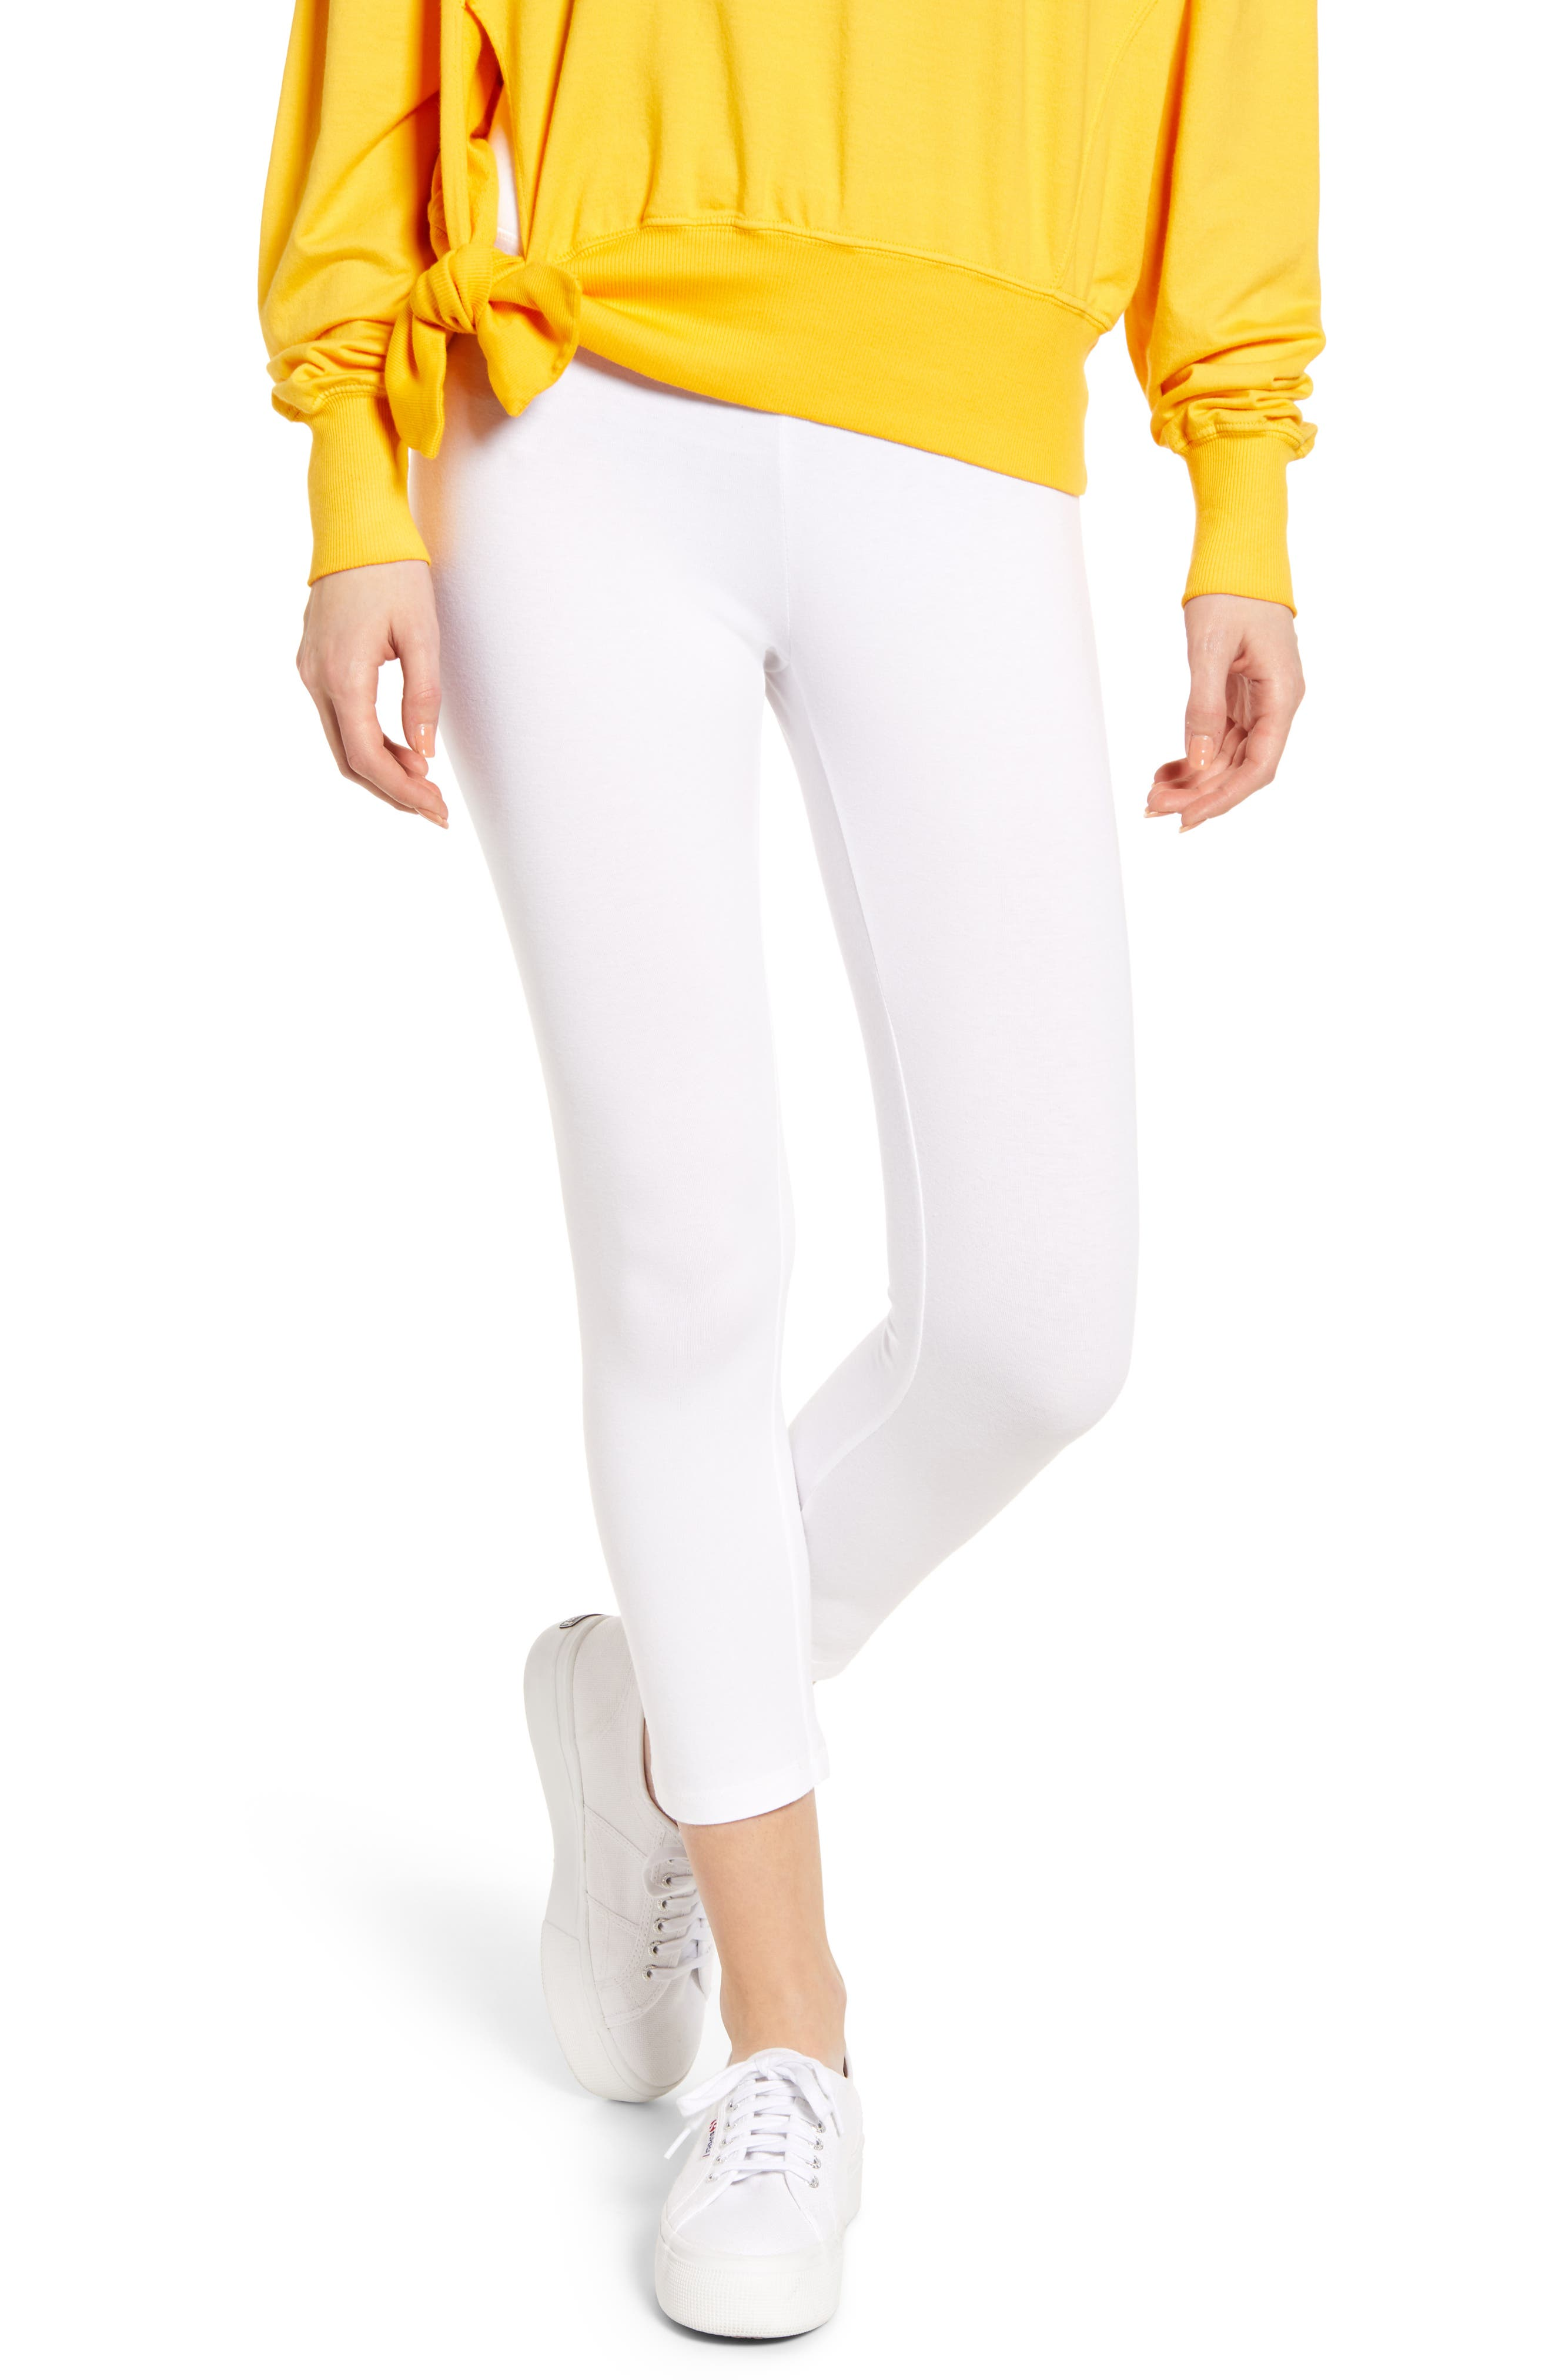 Plus Size Hue Ultra Wide Waistband Capri Leggings, White